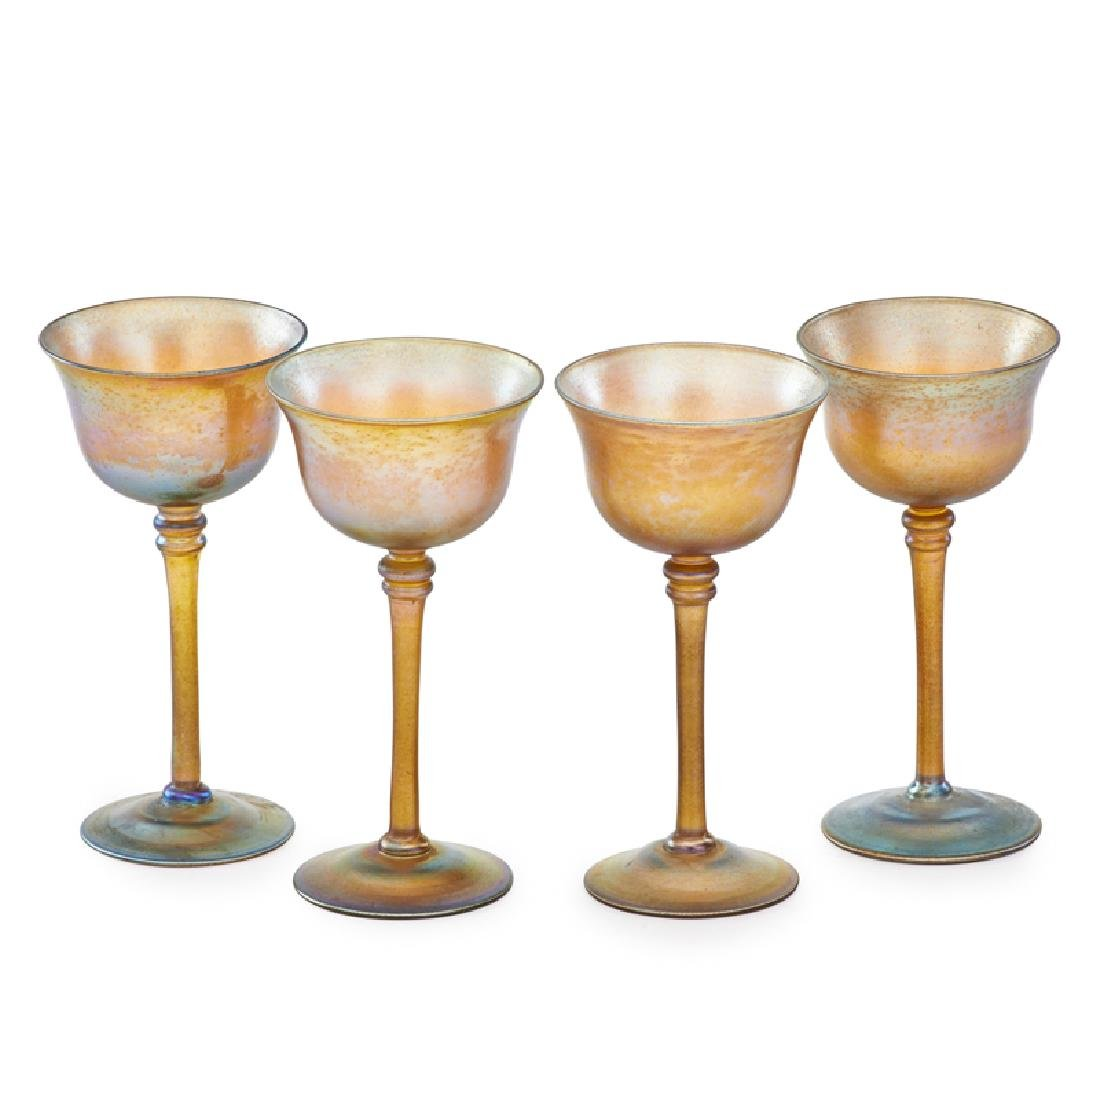 TIFFANY STUDIOS FAVRILE WINE GLASSES